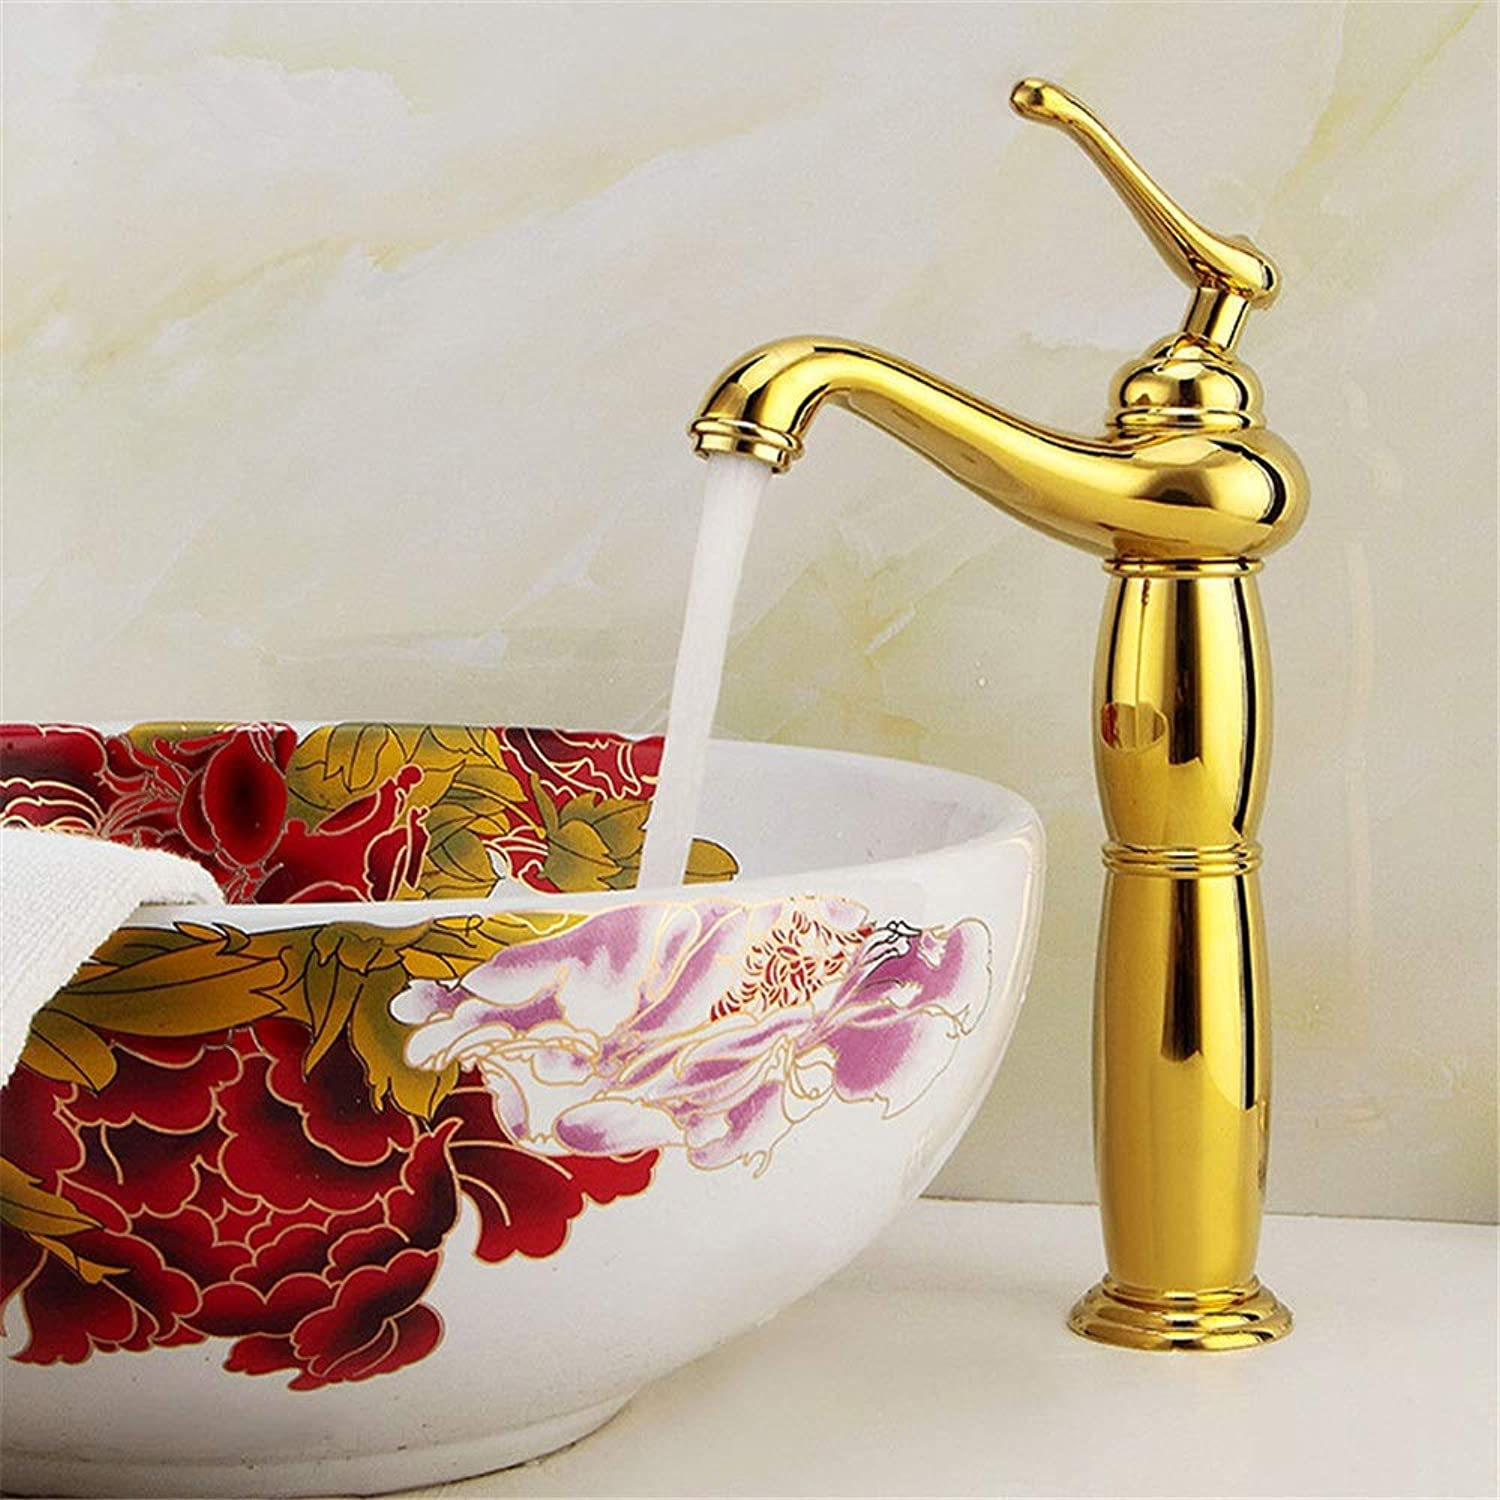 gold and above counter basin hot and cold faucet copper antique single handle single hole European lavatory faucet